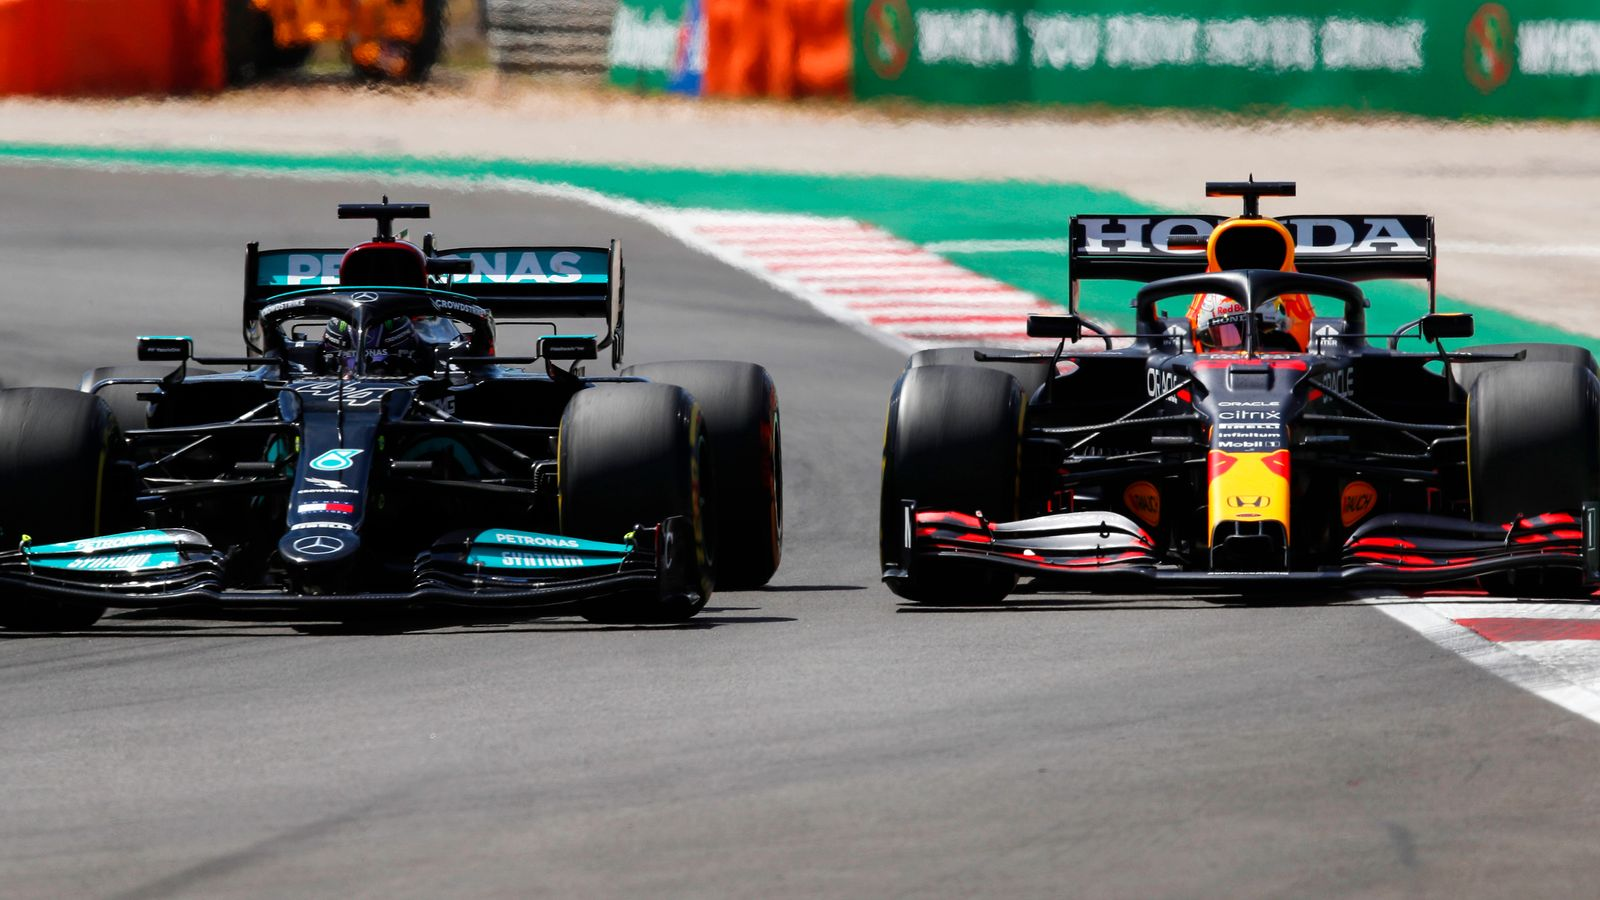 Red Bull hire more Mercedes engine staff for new F1 powertrains division as recruitment ramps up